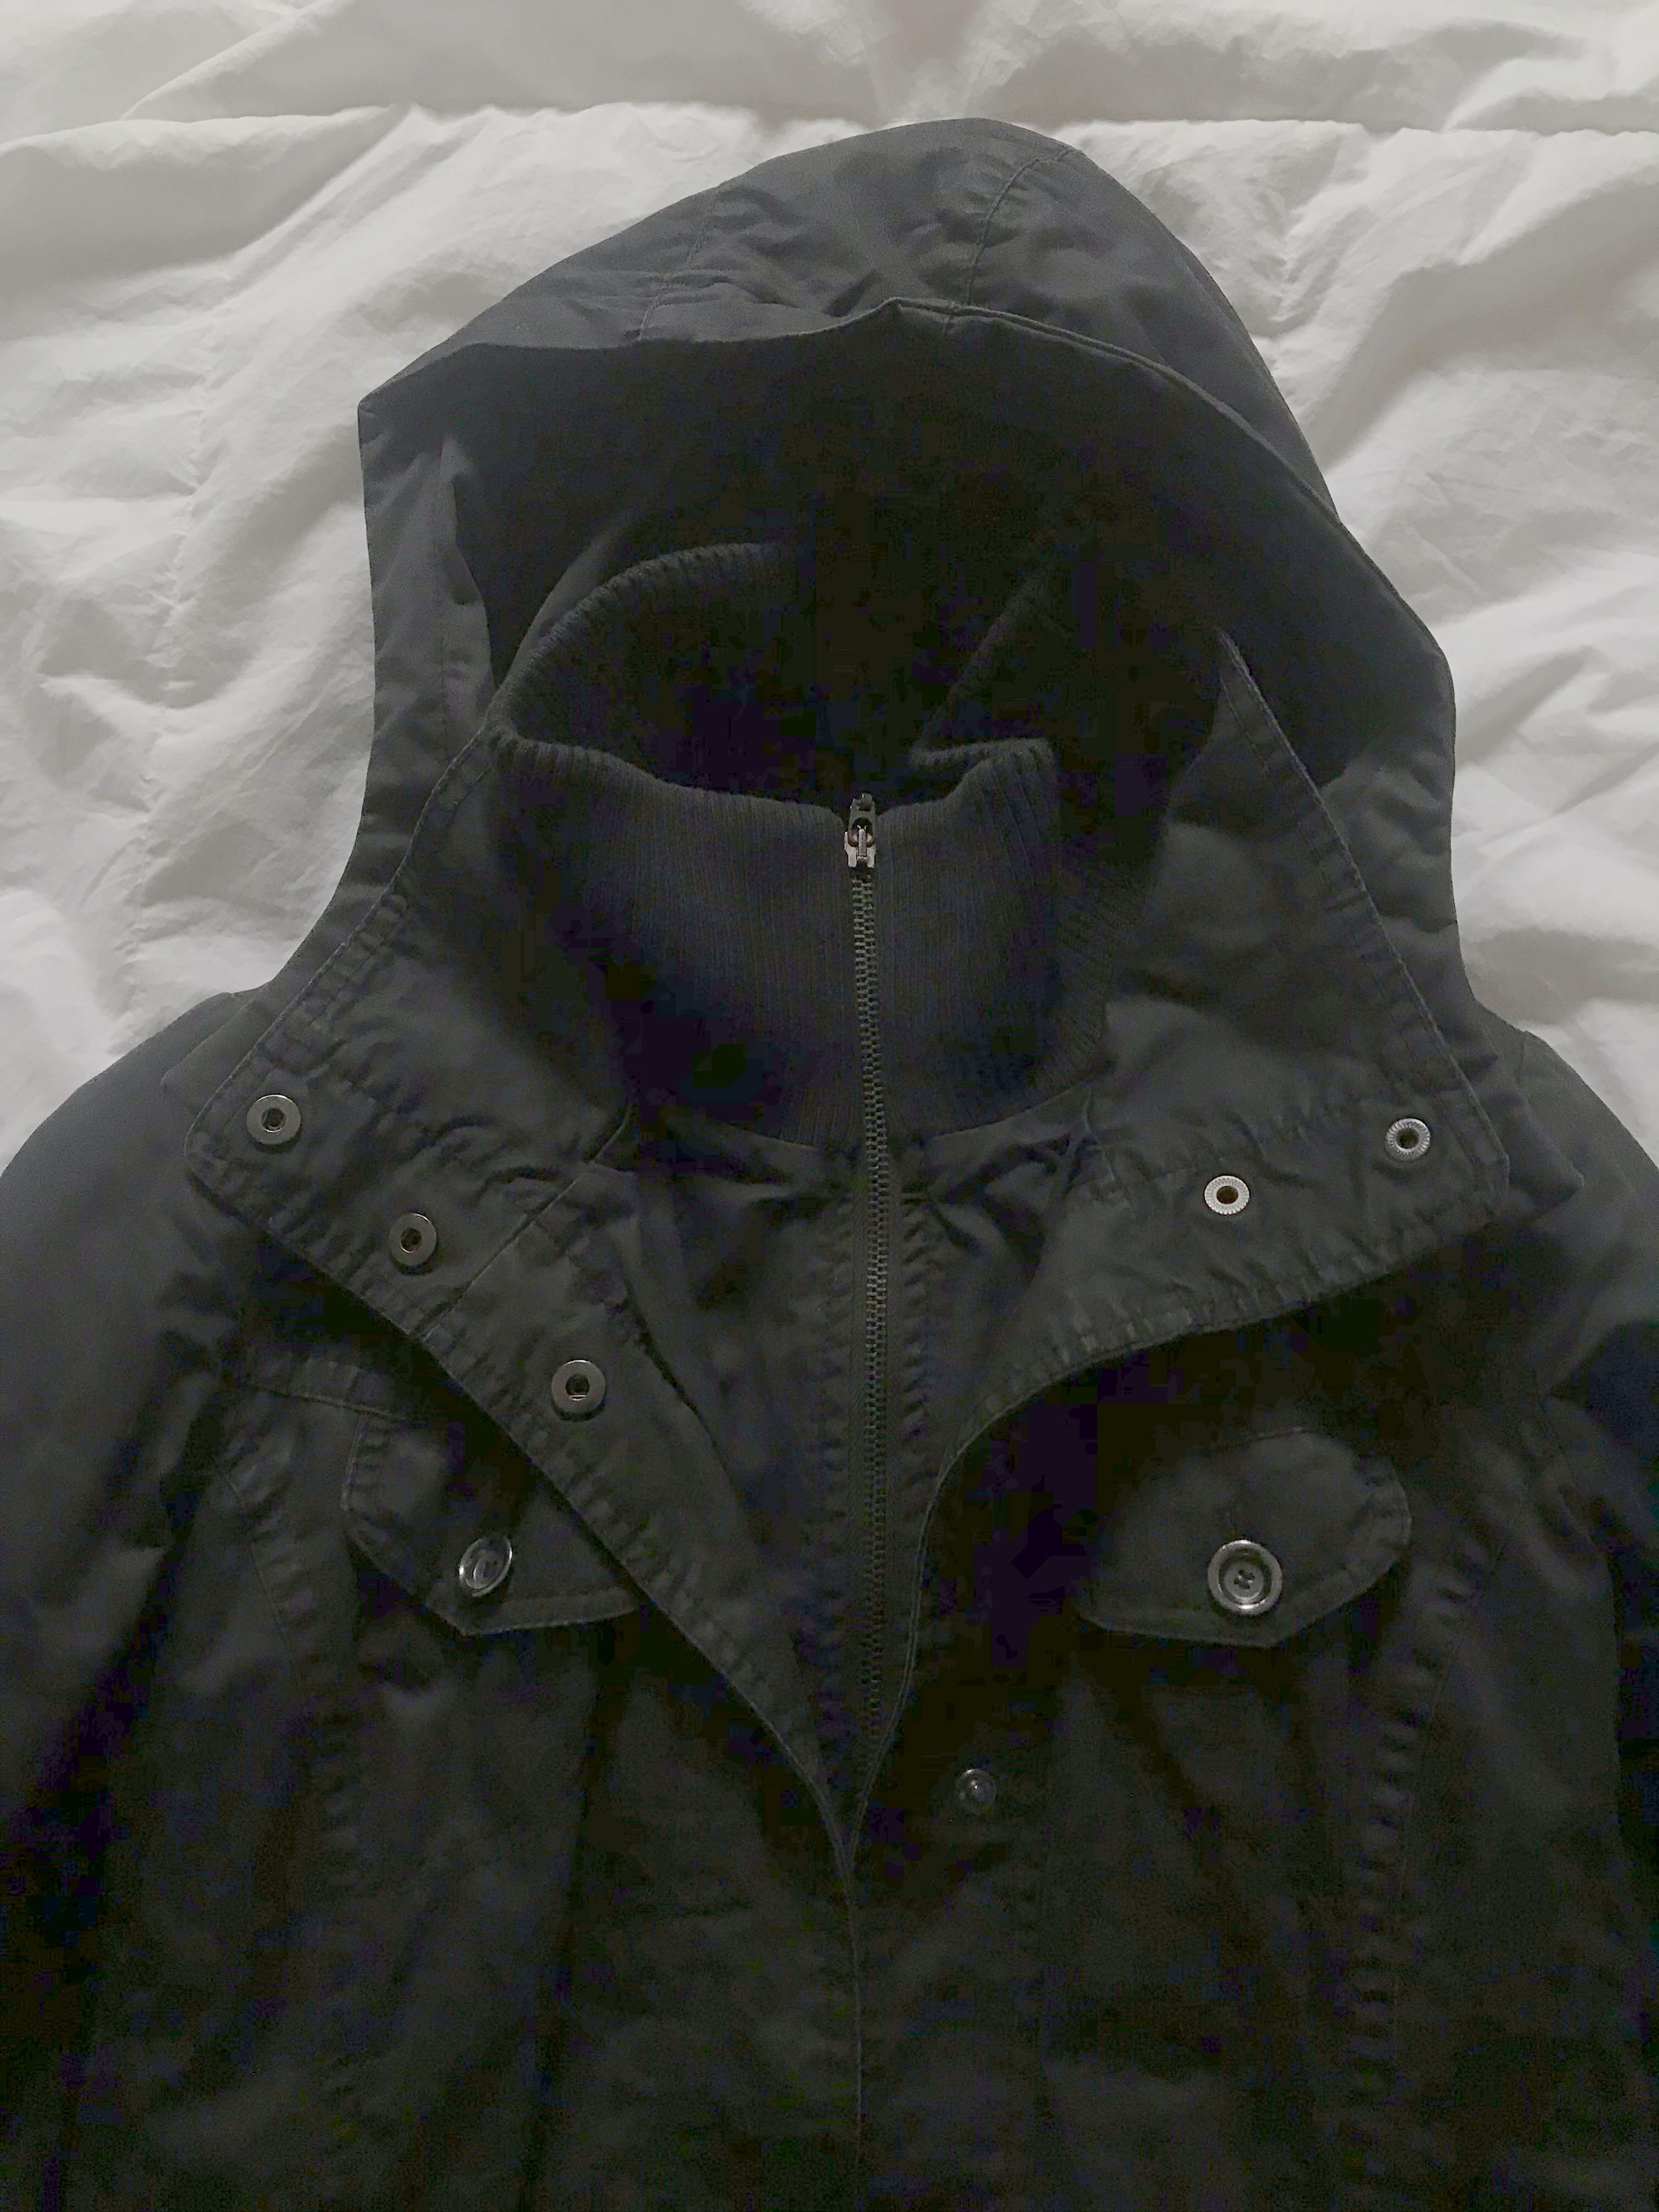 ESPRIT size 0 black jacket - fits like a SMALL (can be cinched in waistline)